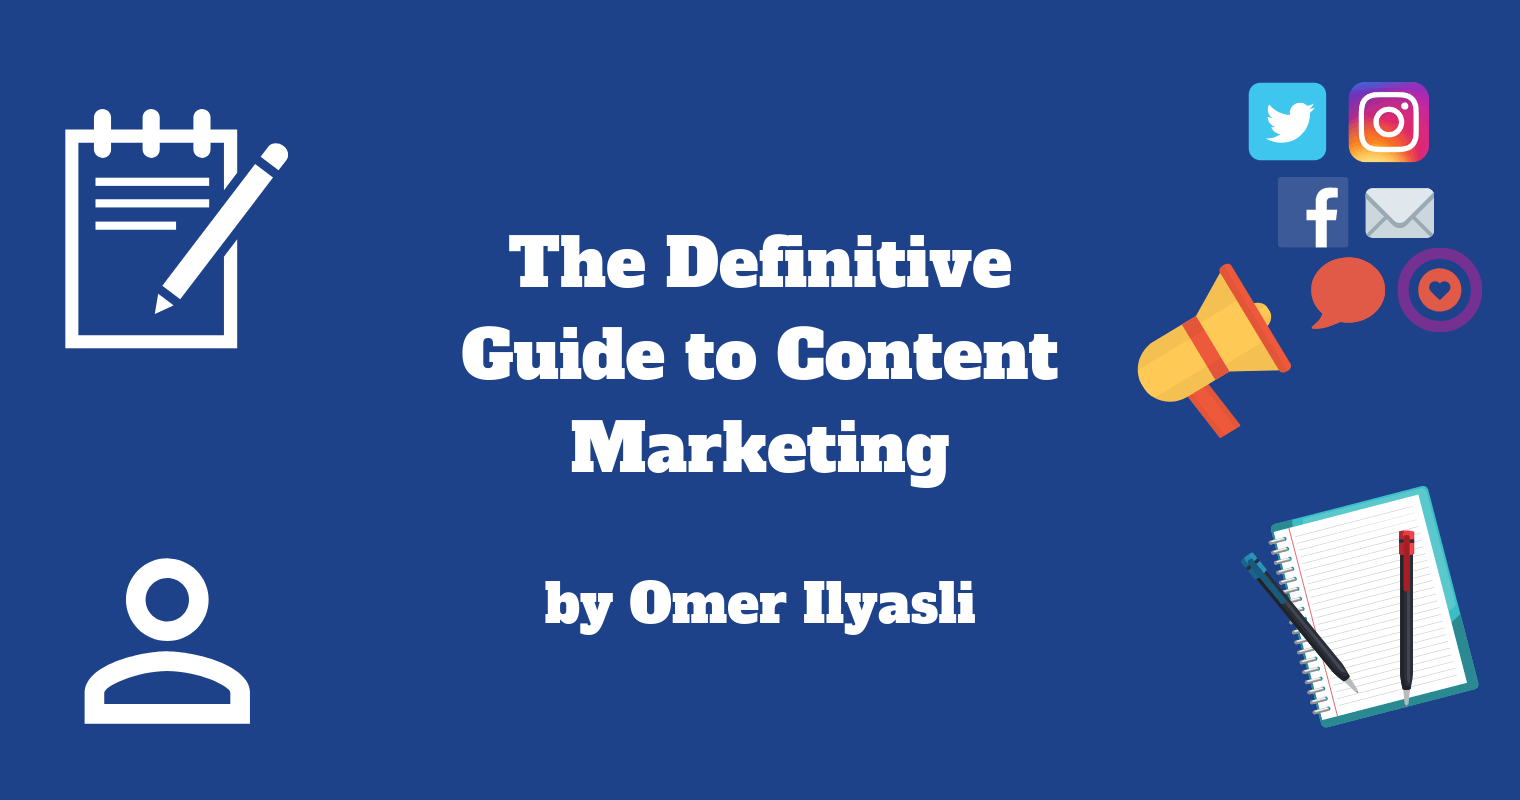 The Definitive Guide to Content Marketing (10000+ Words)